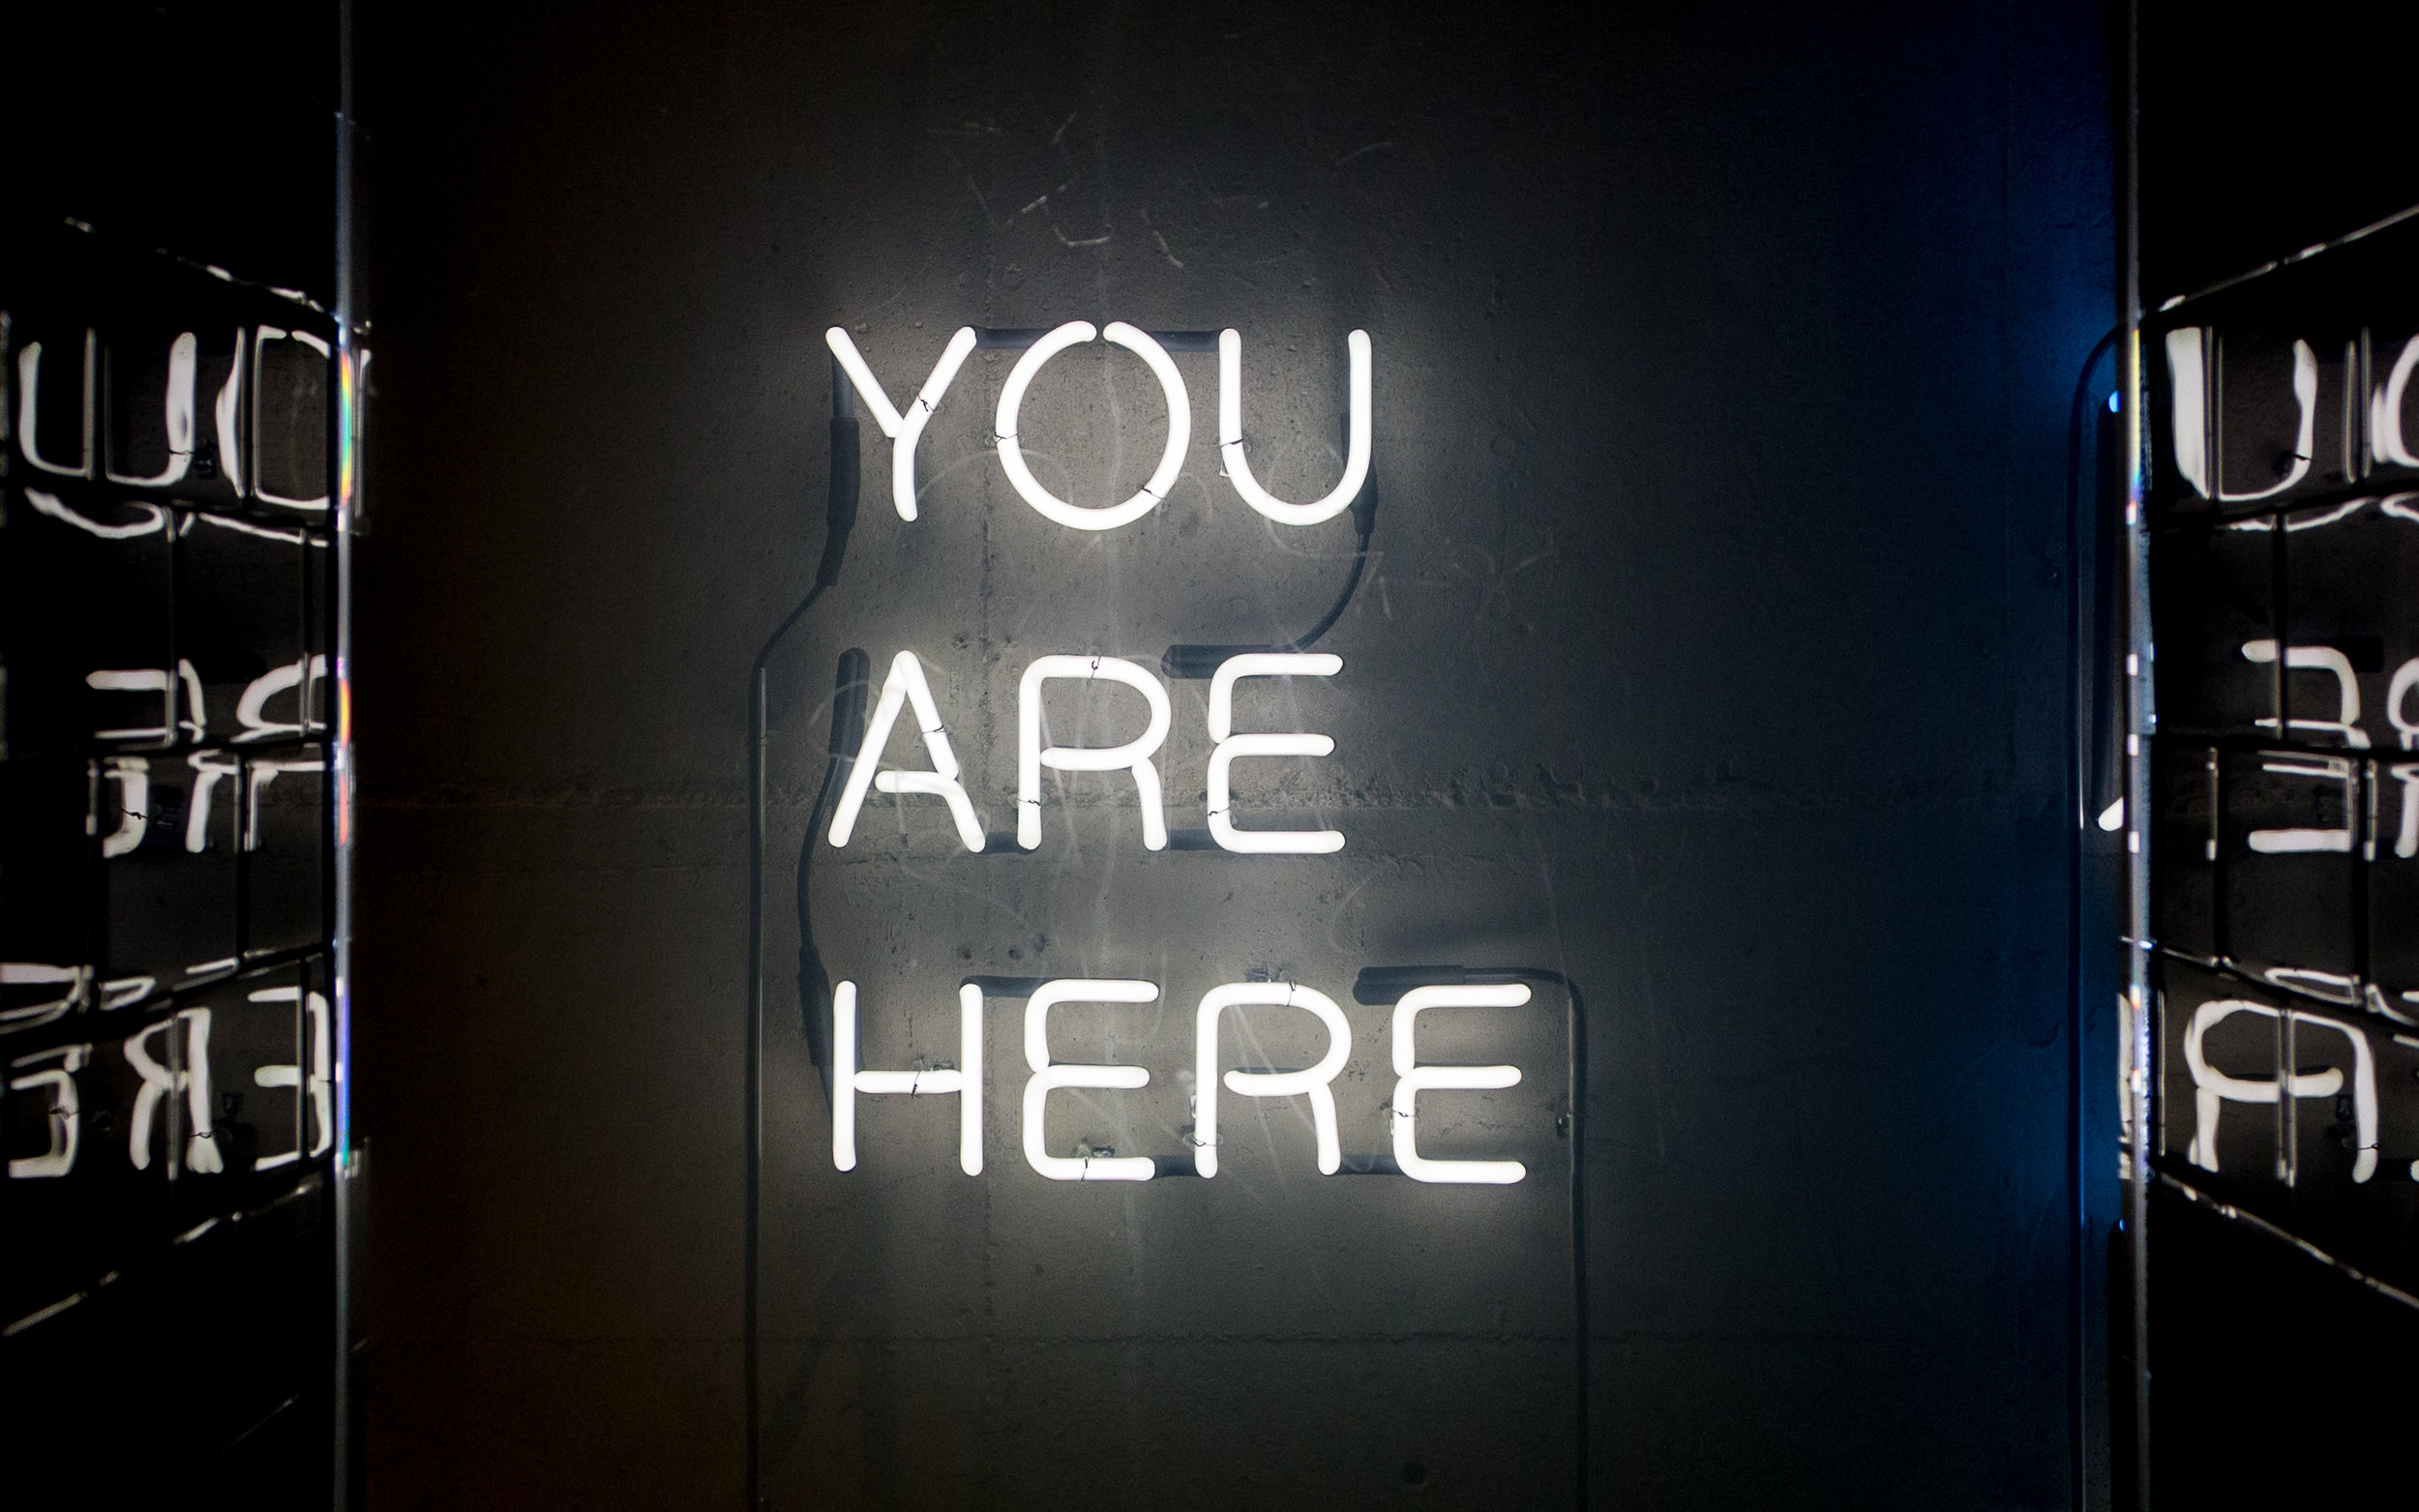 Neon sign, saying 'You Are Here'